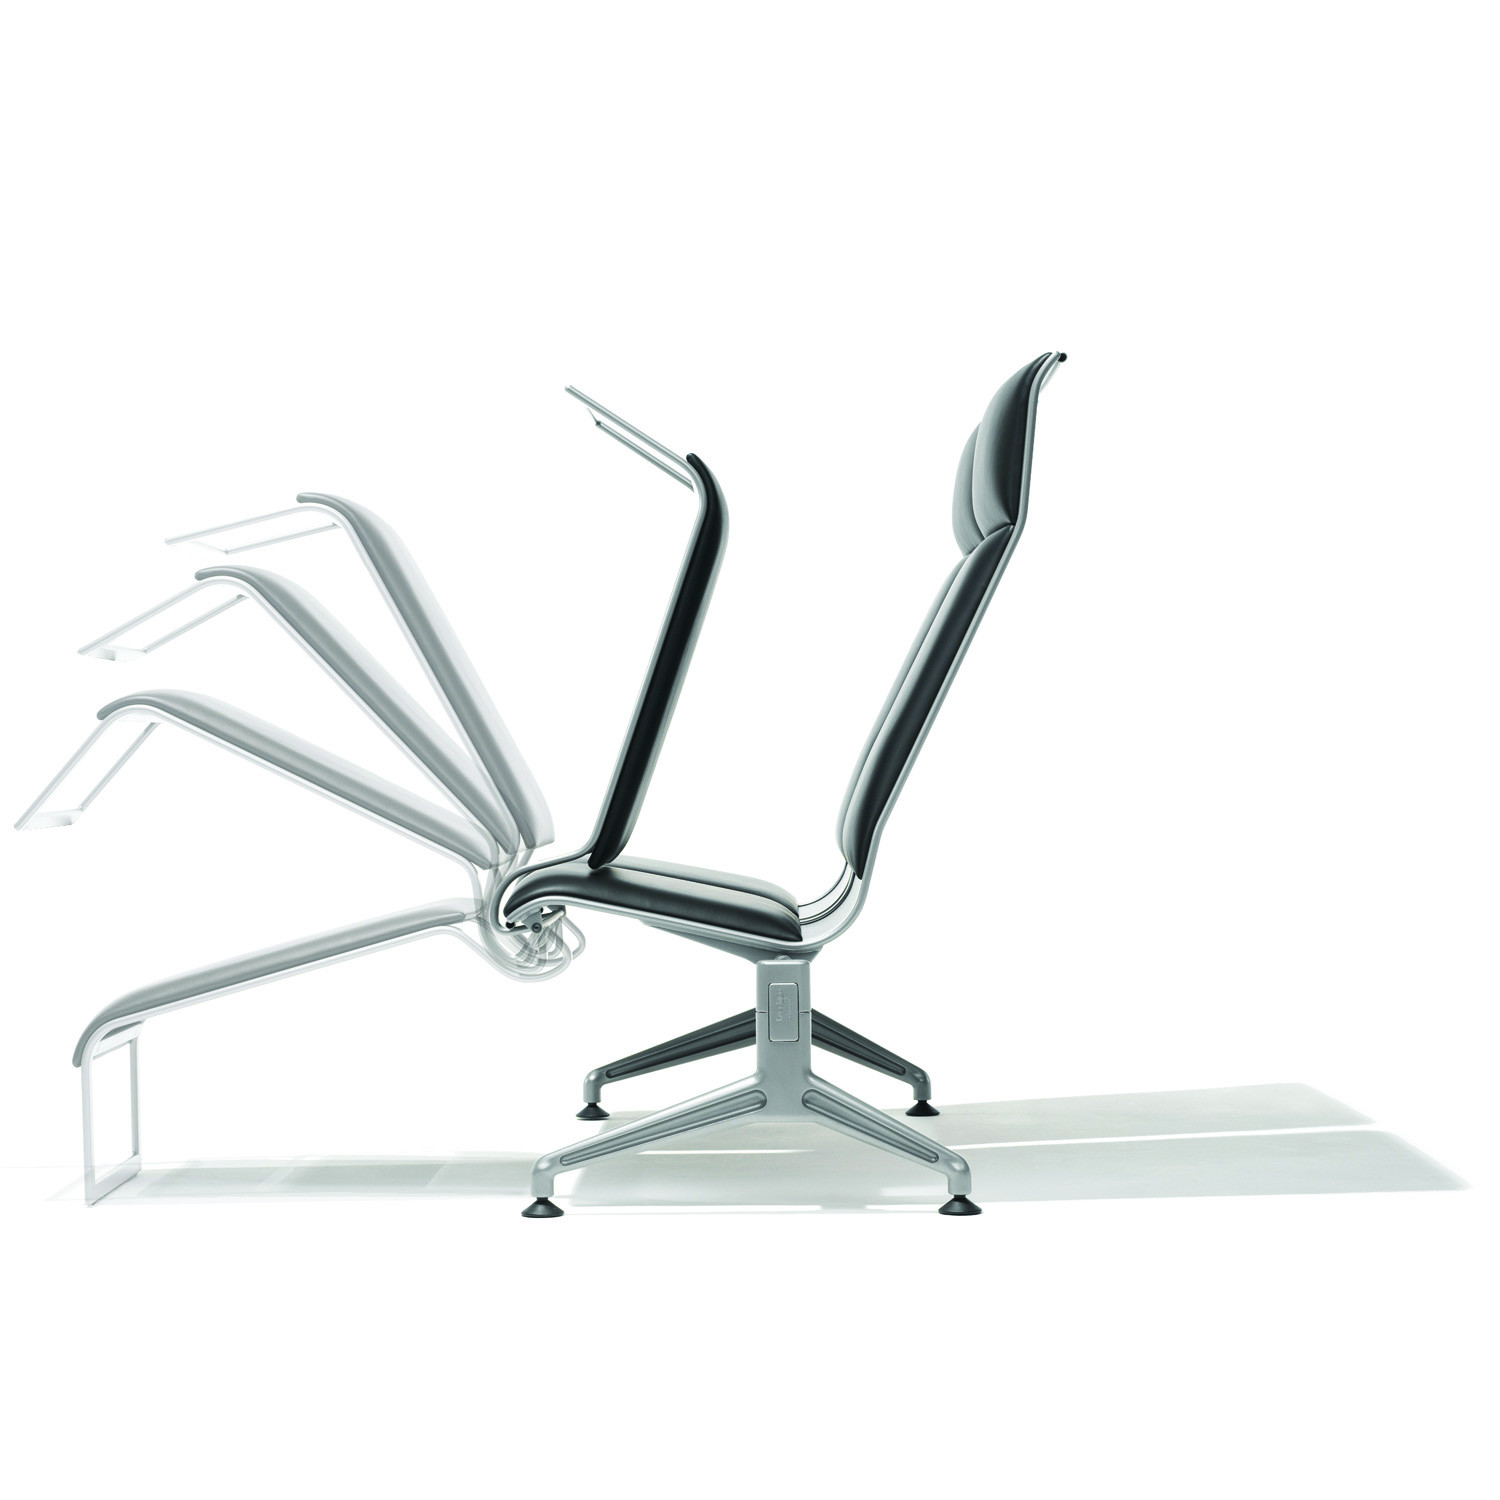 7100 Terminal Chair with legs extenion